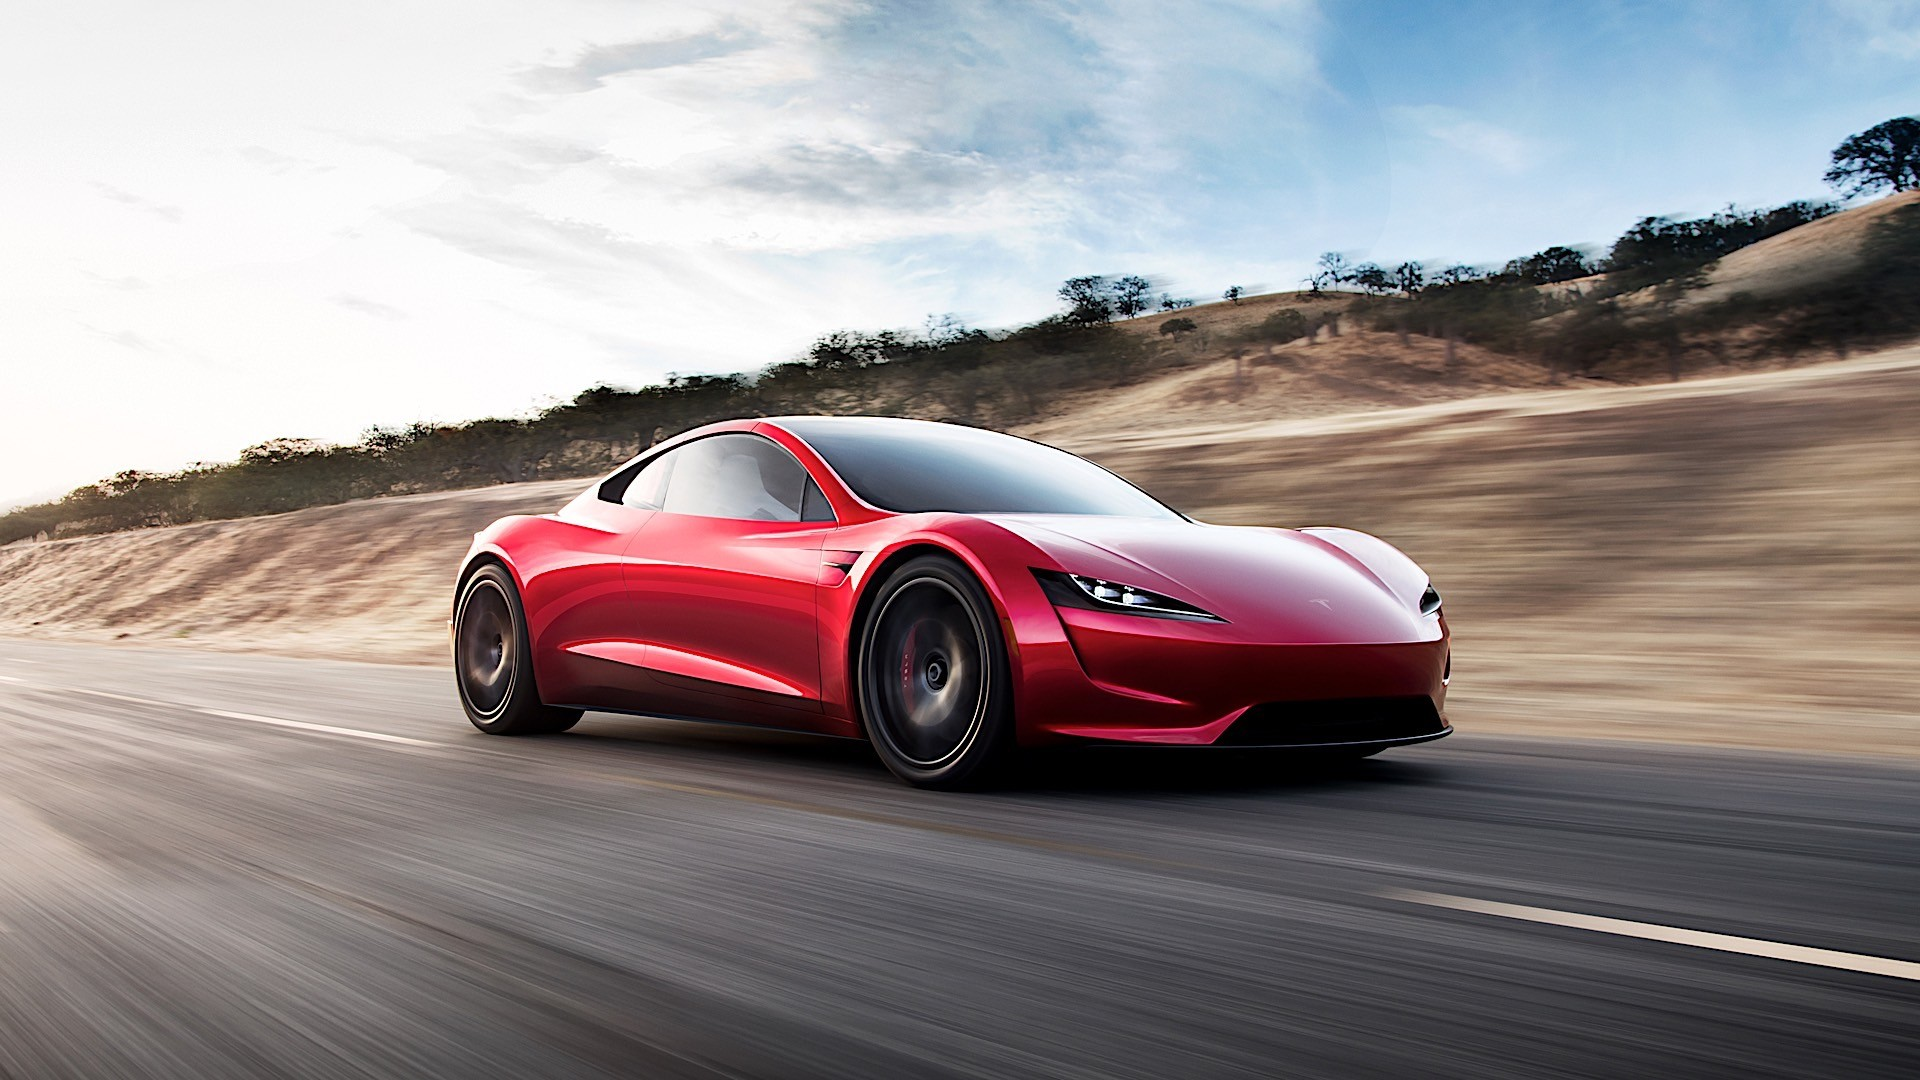 Elon Musk: Tesla's next-gen Roadster will have an 'Augmented Mode'